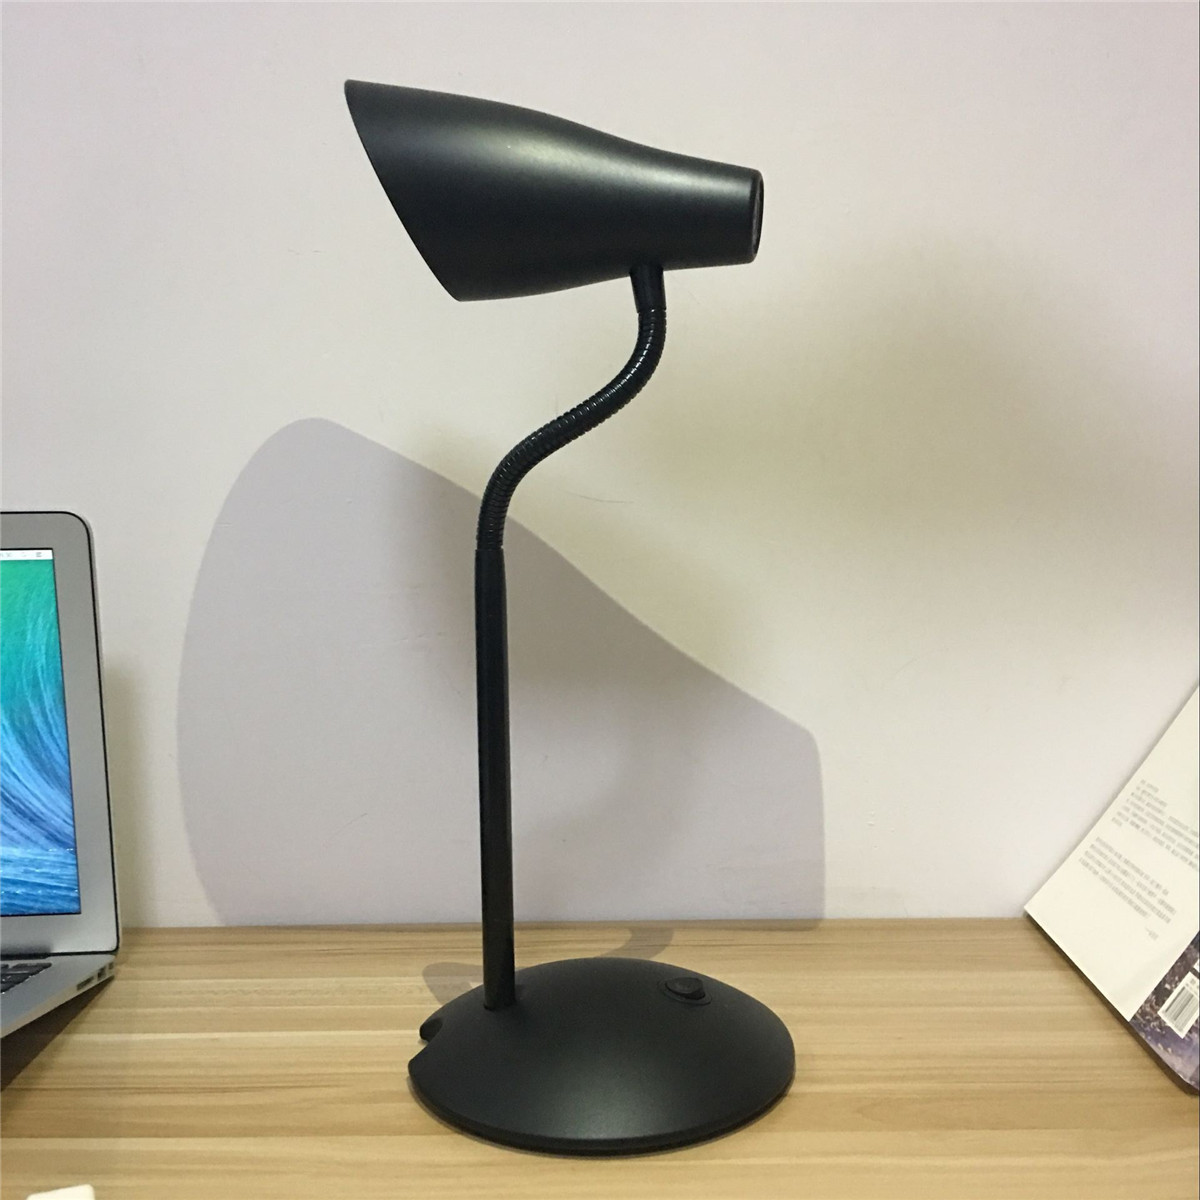 Dc5v 6w Multi Function Led Smart Touch Dimming Table Lamp